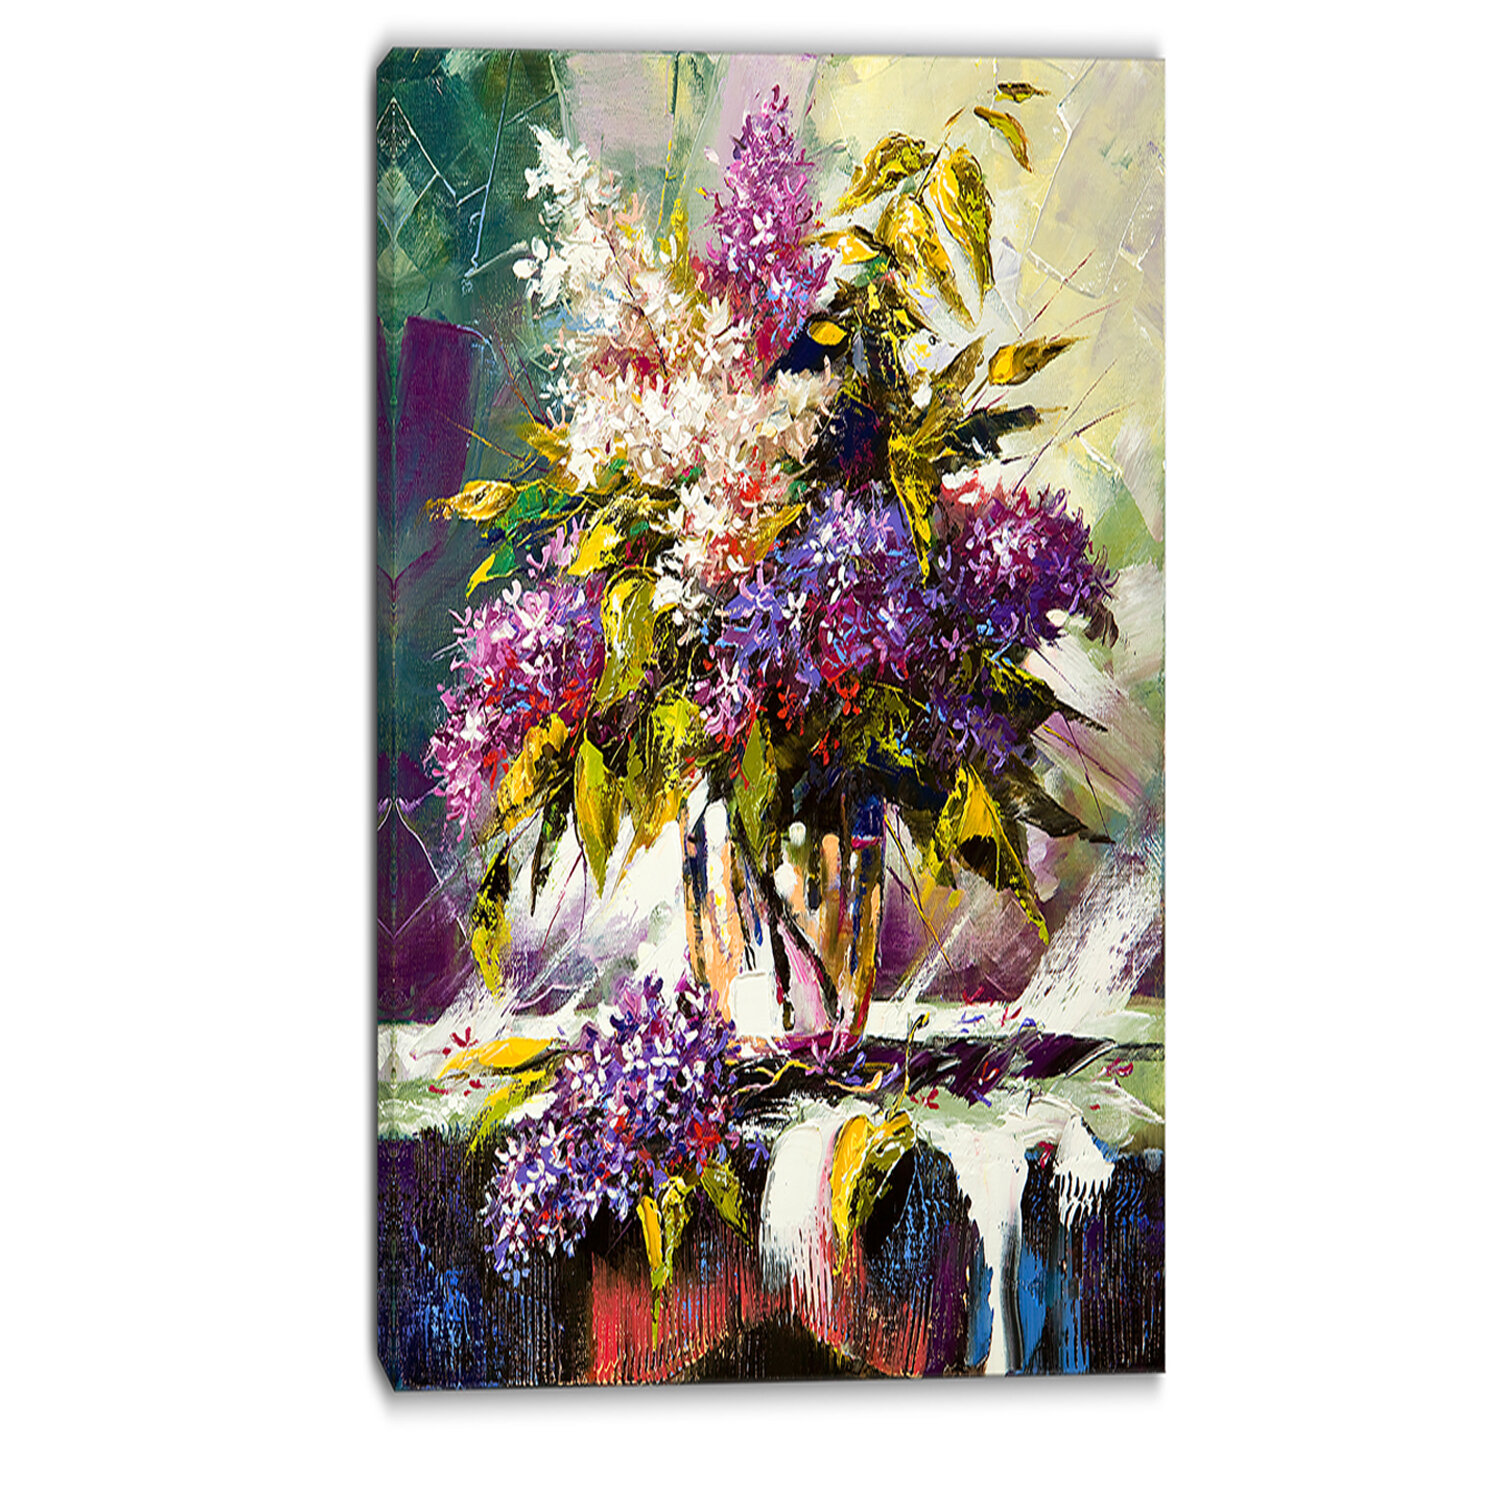 Designart Lilac Bouquet In A Vase Floral Painting Print On Wrapped Canvas Wayfair